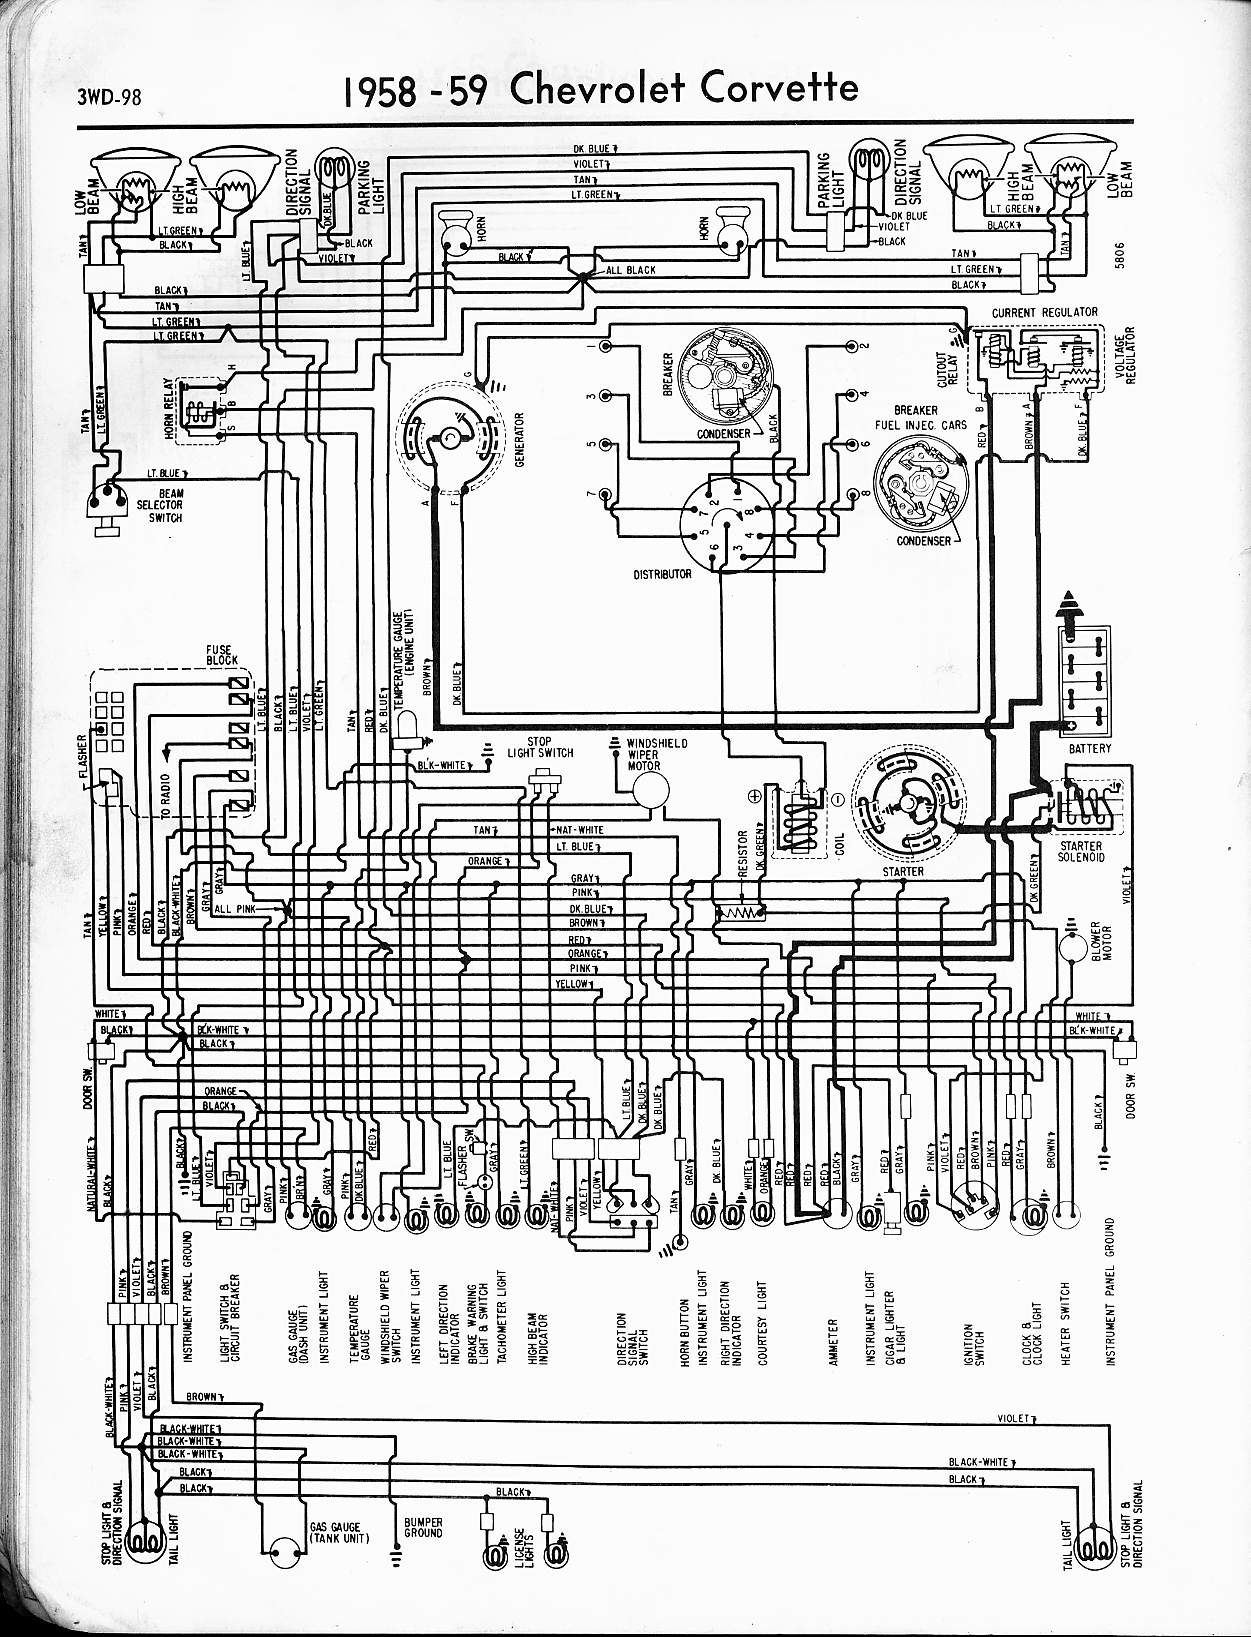 57 65 chevy wiring diagrams 1959 Chevy Impala Wiring Diagram fuse diagram for 1959 chevy impala